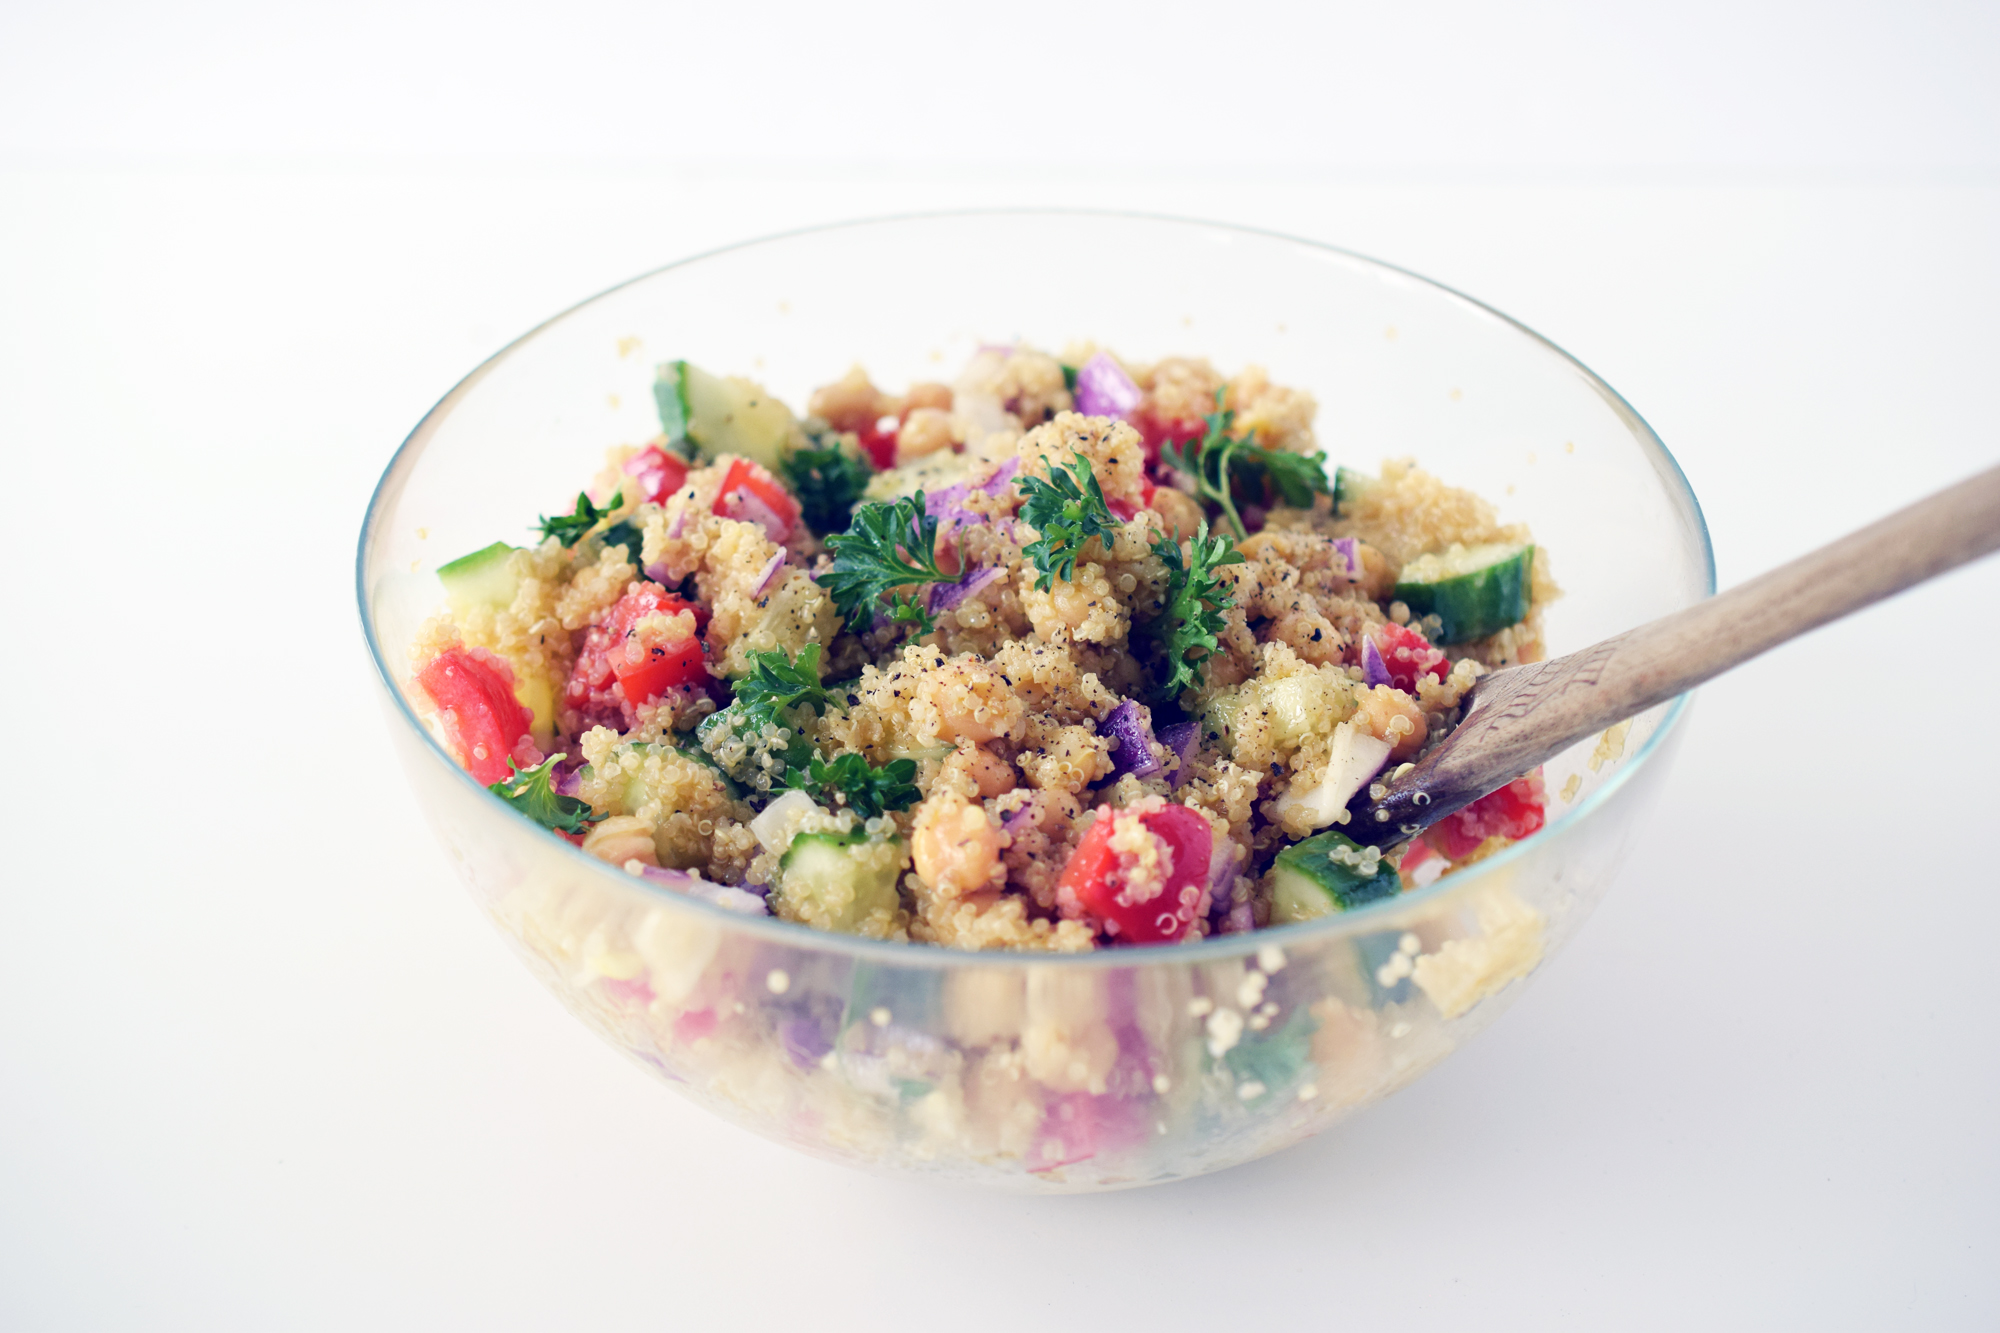 honey dijon quinoa salad in glass bowl with wooden spoon